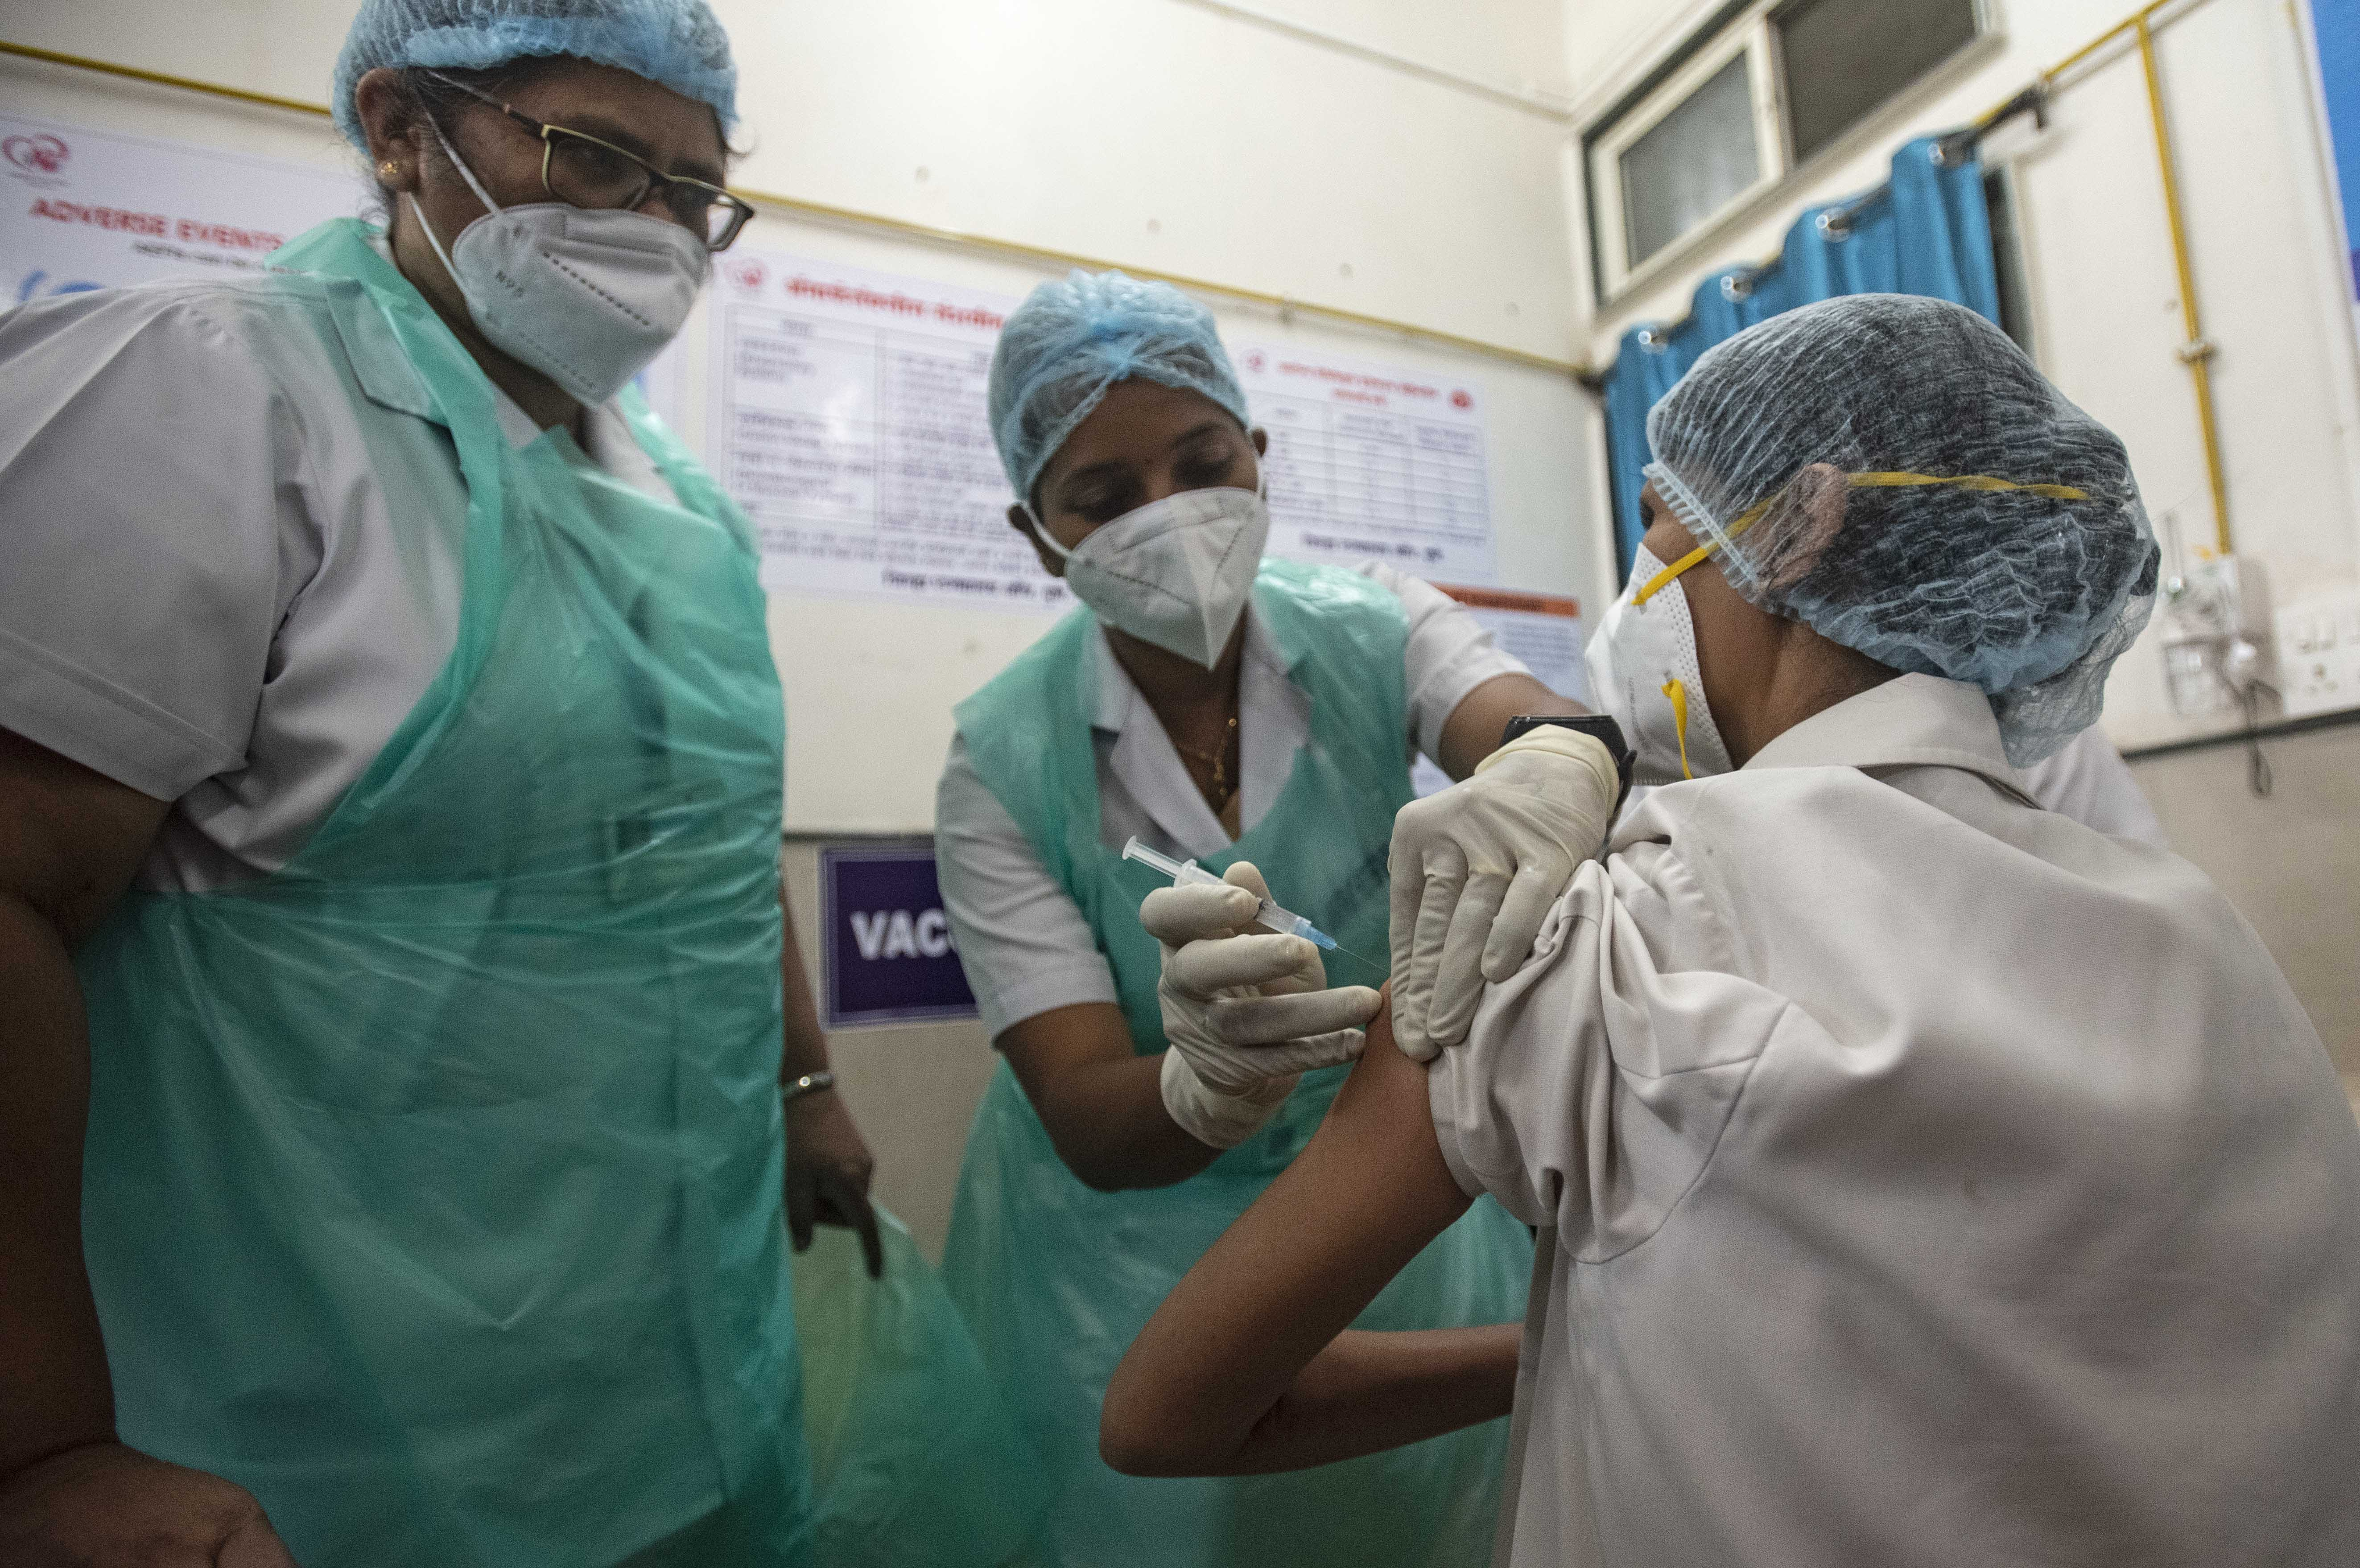 Top Indian vaccine maker's production capacity is reportedly 'stressed' as Covid-19 cases rise